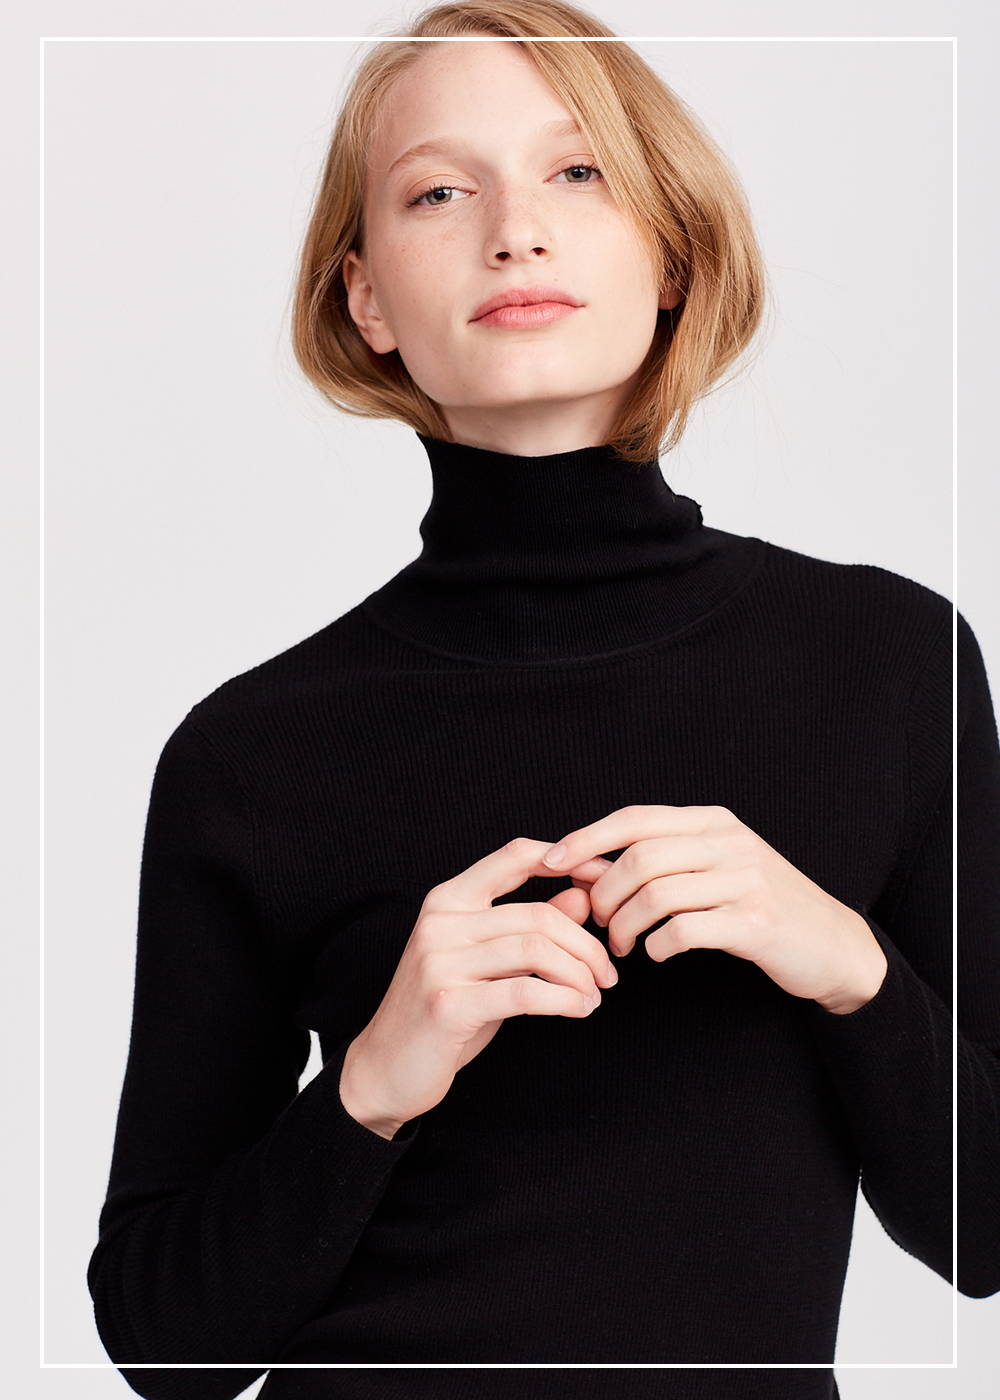 https://brassclothing.com/products/the-layering-turtleneck